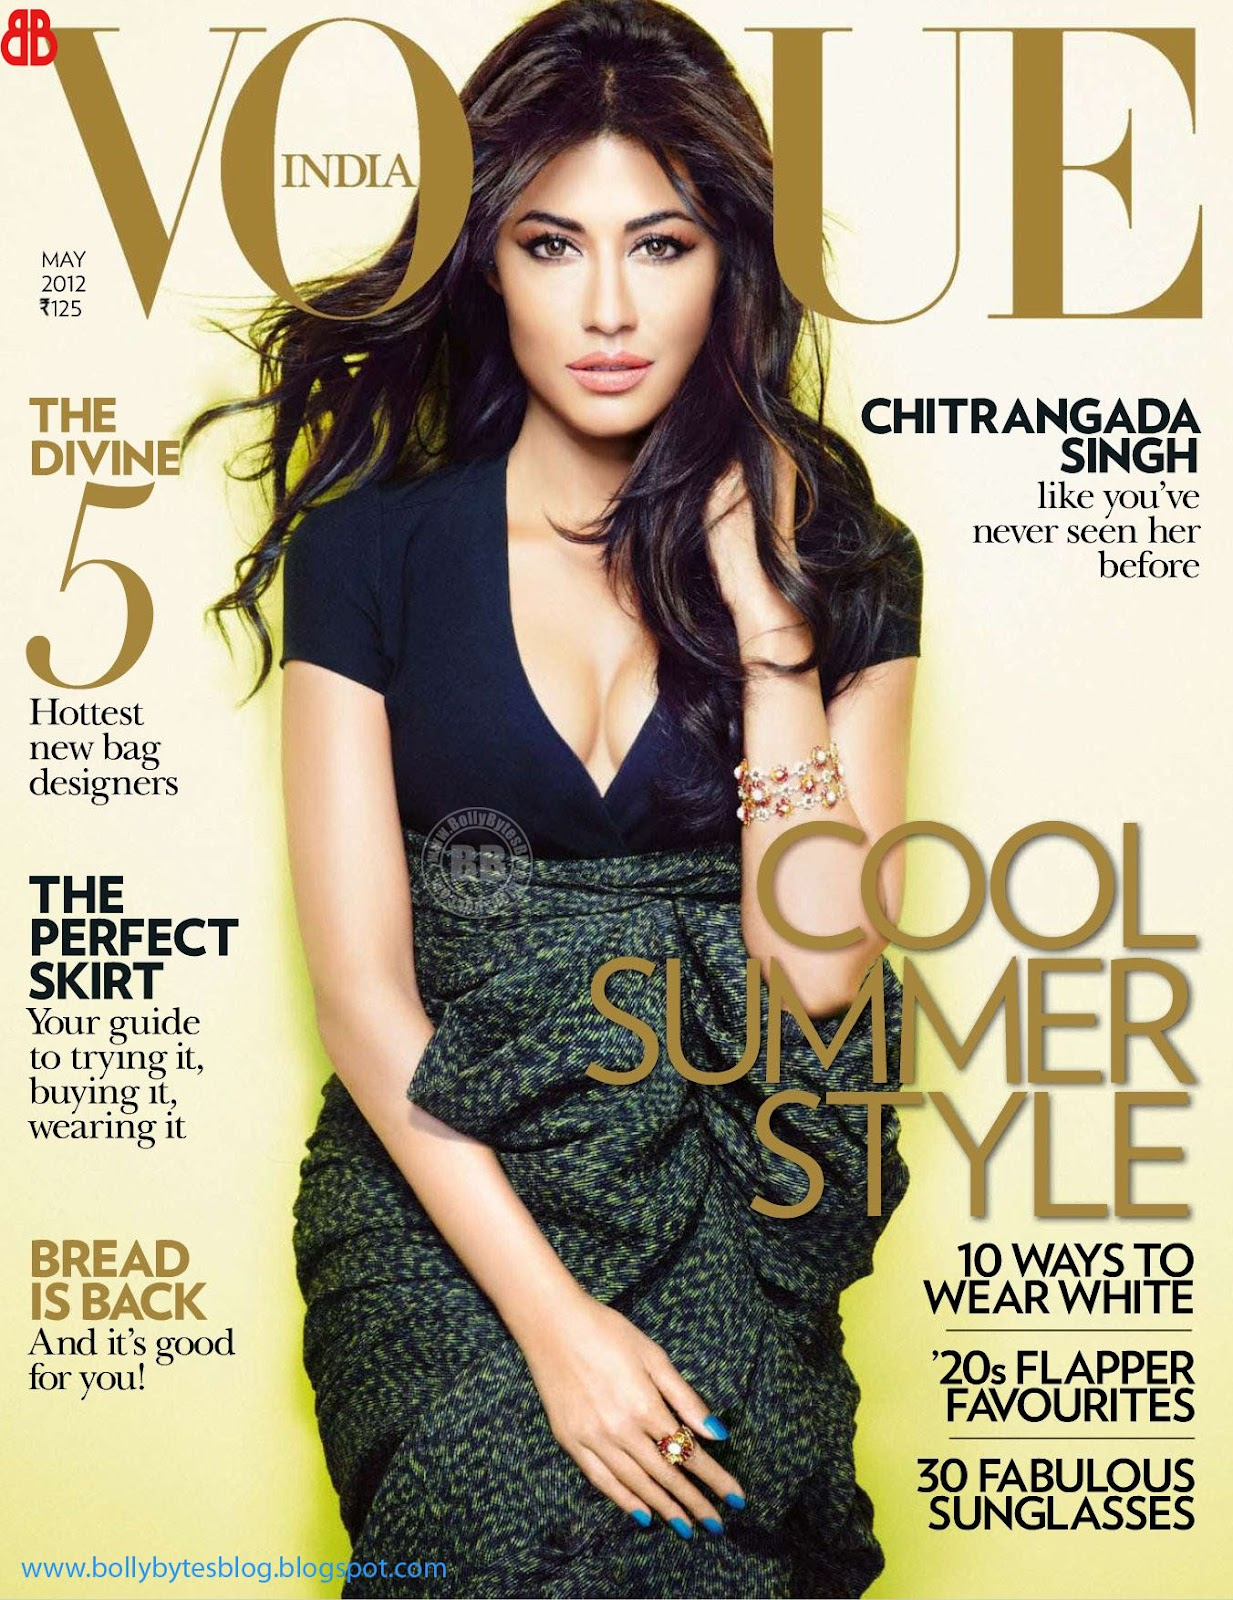 http://3.bp.blogspot.com/-xJcpzRipkoA/T6_5z6BoriI/AAAAAAAAIkE/J5inRVOjS6w/s1600/Hot-Chitrangada-Singh-Photo-Shoot-for-Vogue-India-May-2012-Pics-01.jpg